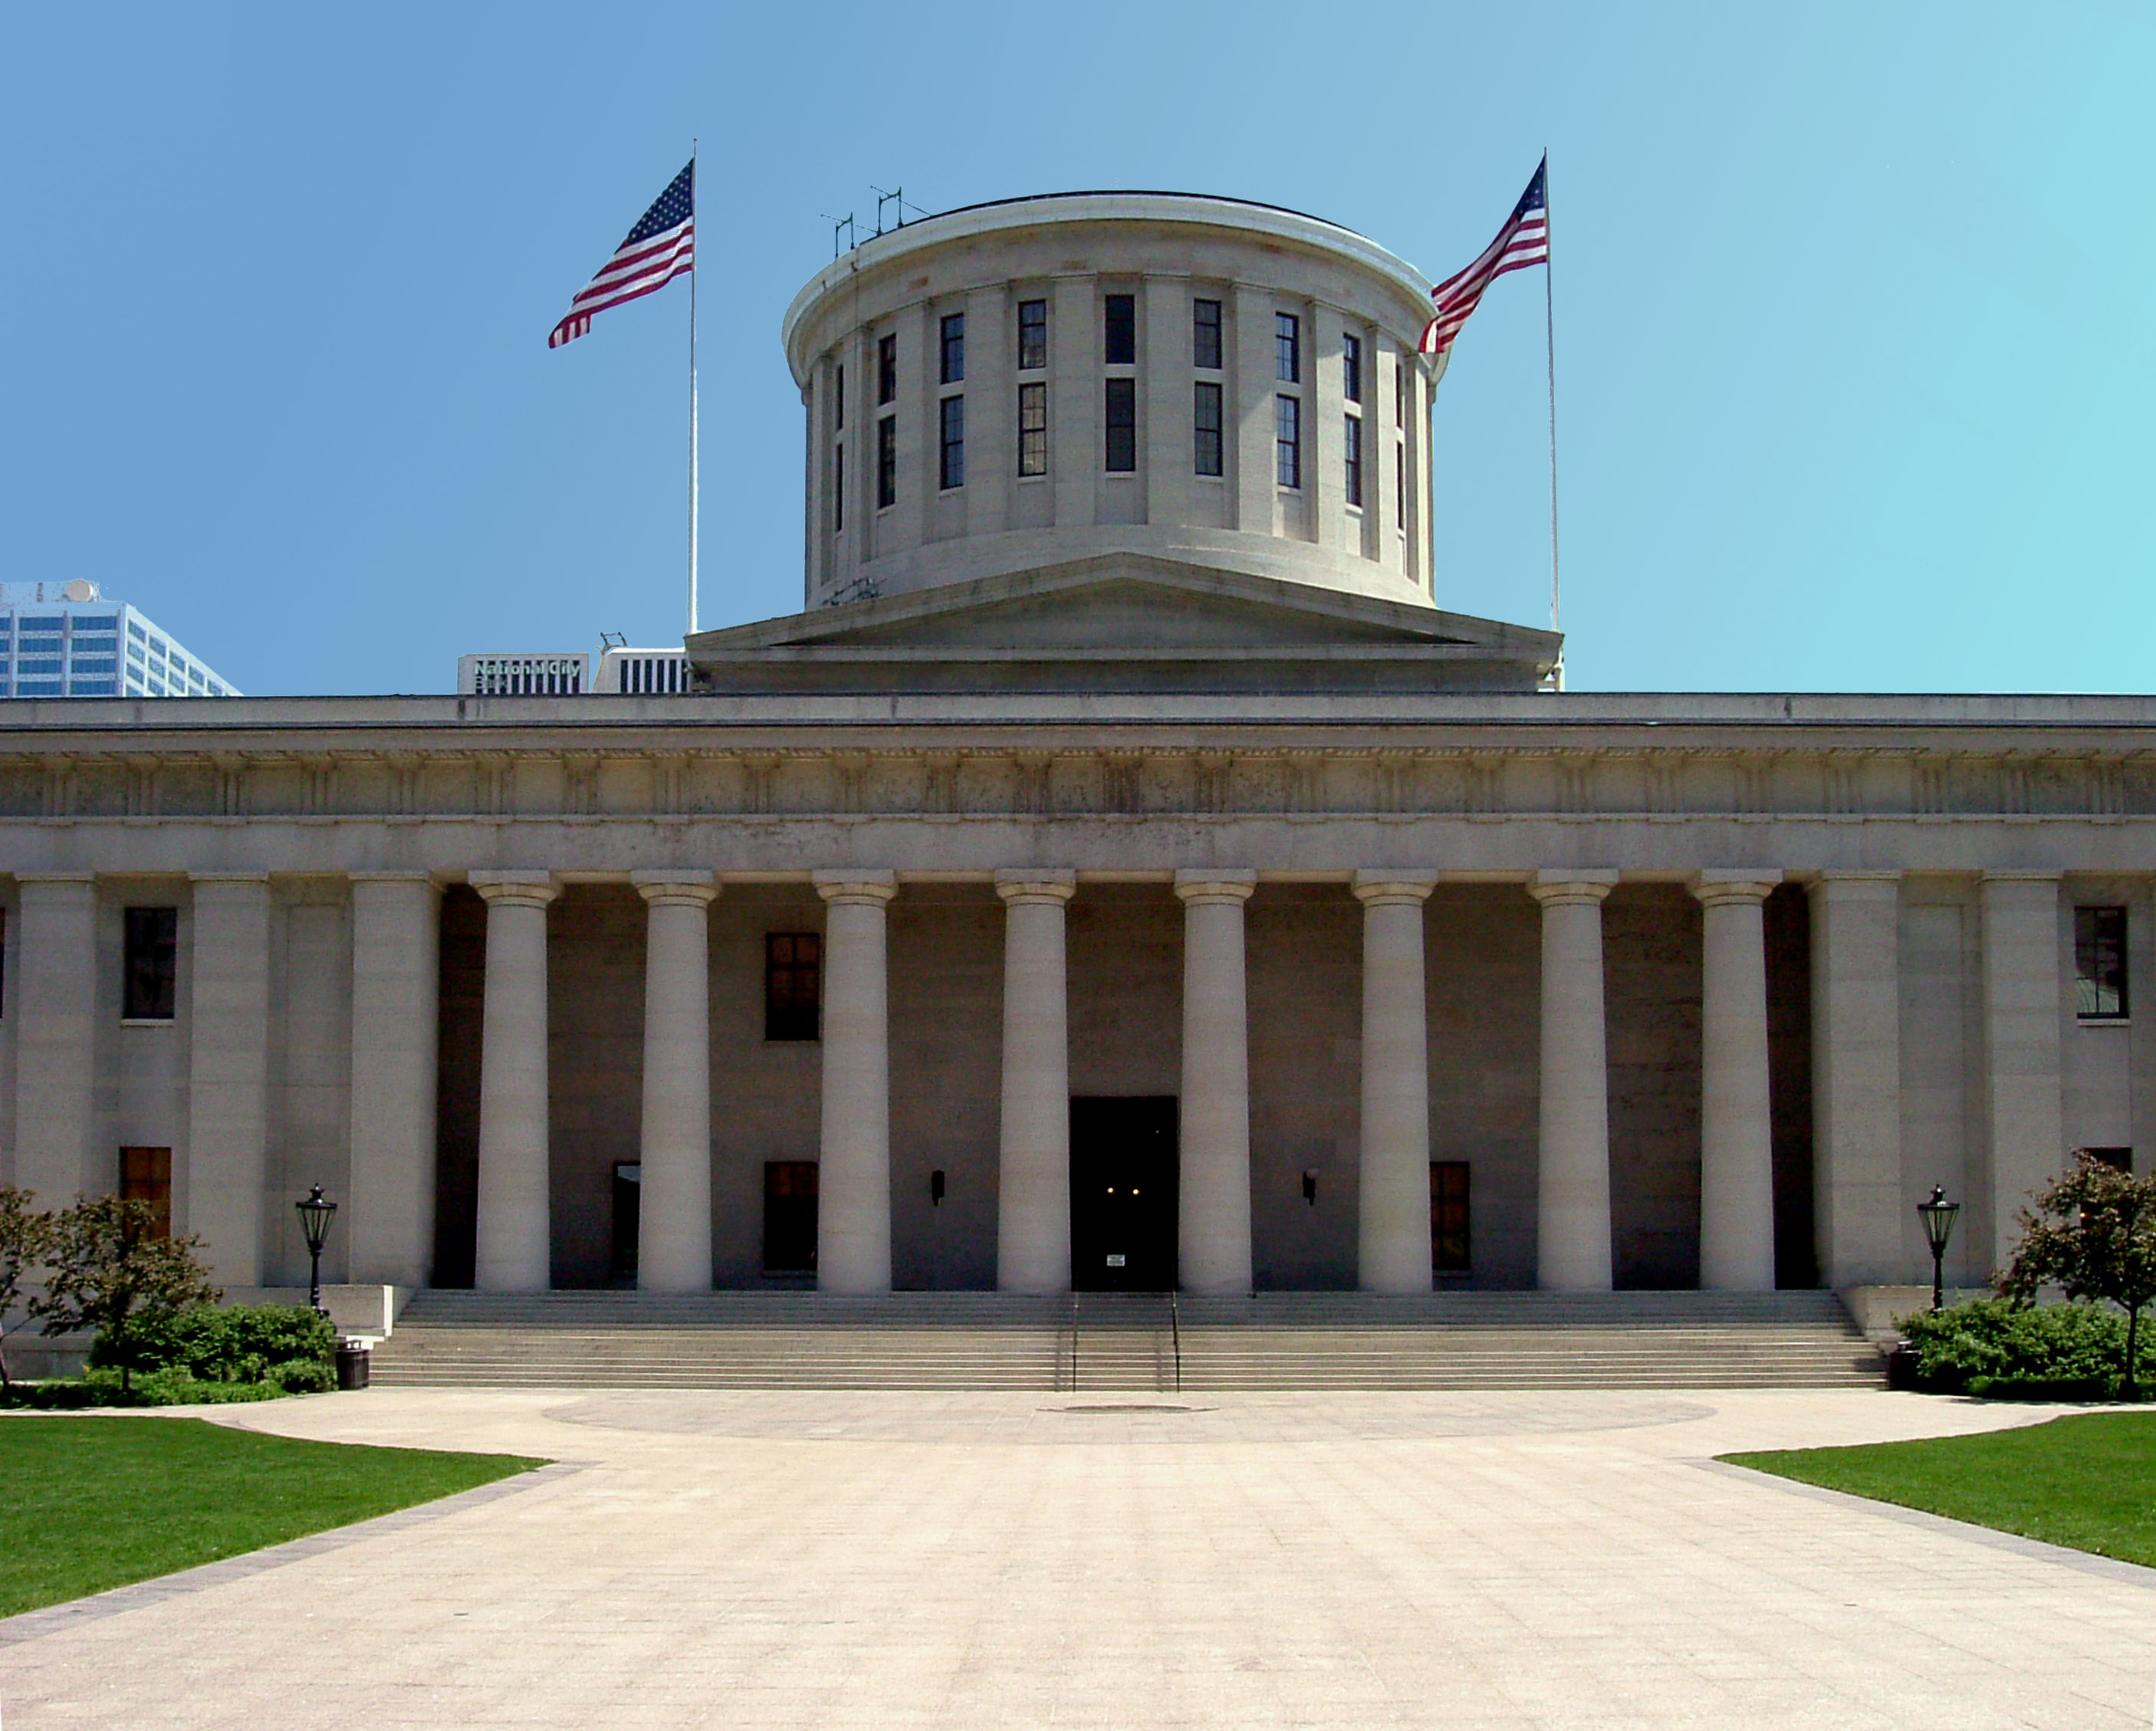 Featured Image the Ohio Statehouse in Columbus, OH support for Faith-Based Recovery